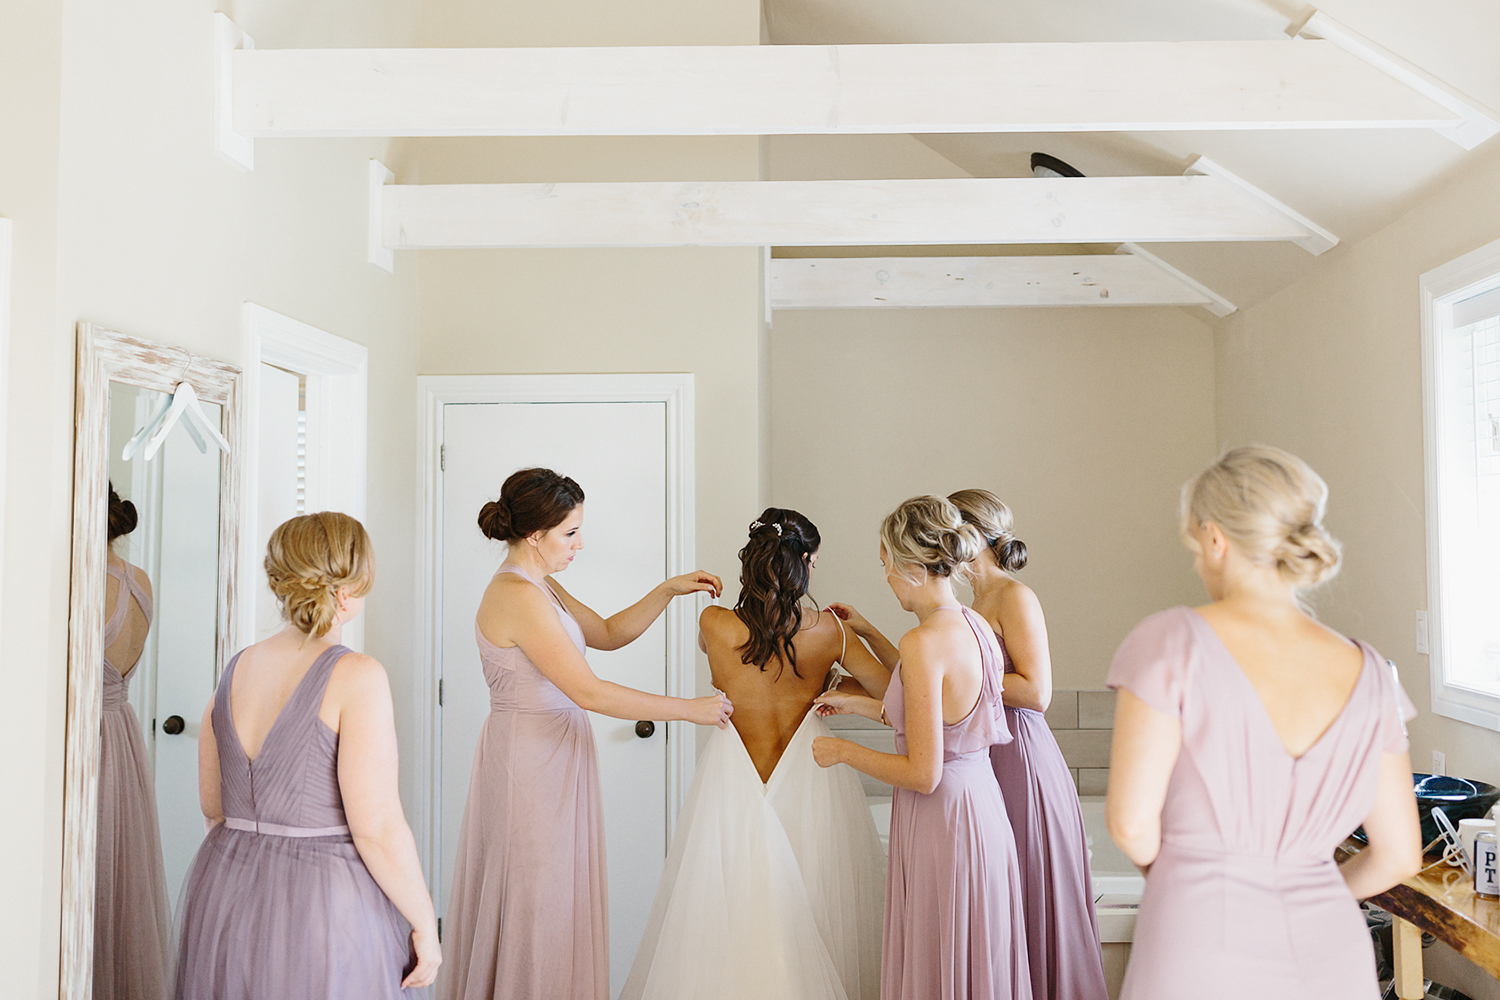 muskoka-wedding-photographer-toronto-wedding-photography-hidden-valley-resort-documentary-photojournalistic-fine-art-wedding-photography-getting-ready-bride-giving-her-mom-a-gift.jpg